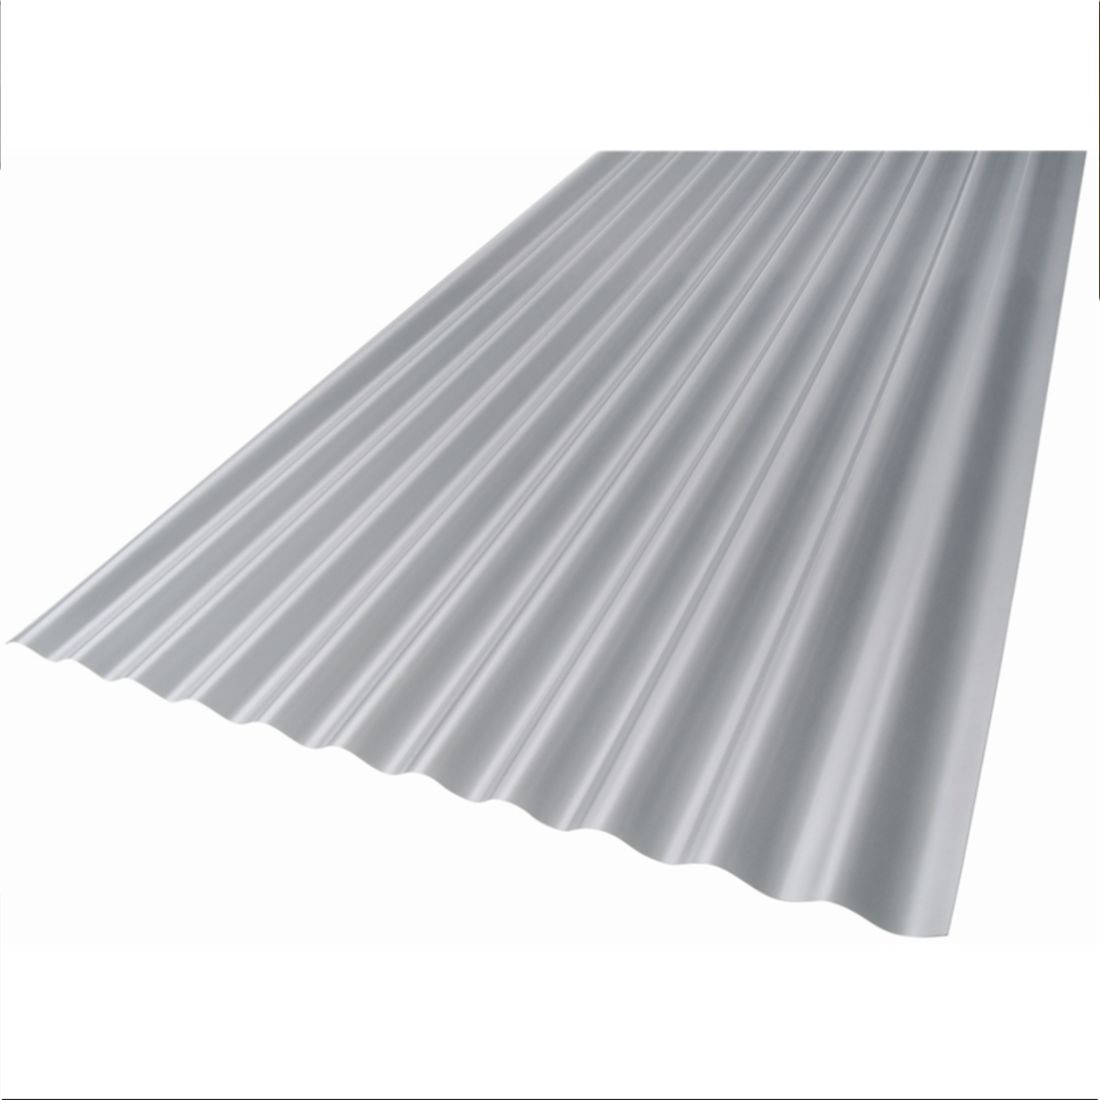 CoolTech Corrugated Grey 3600 x 860mm